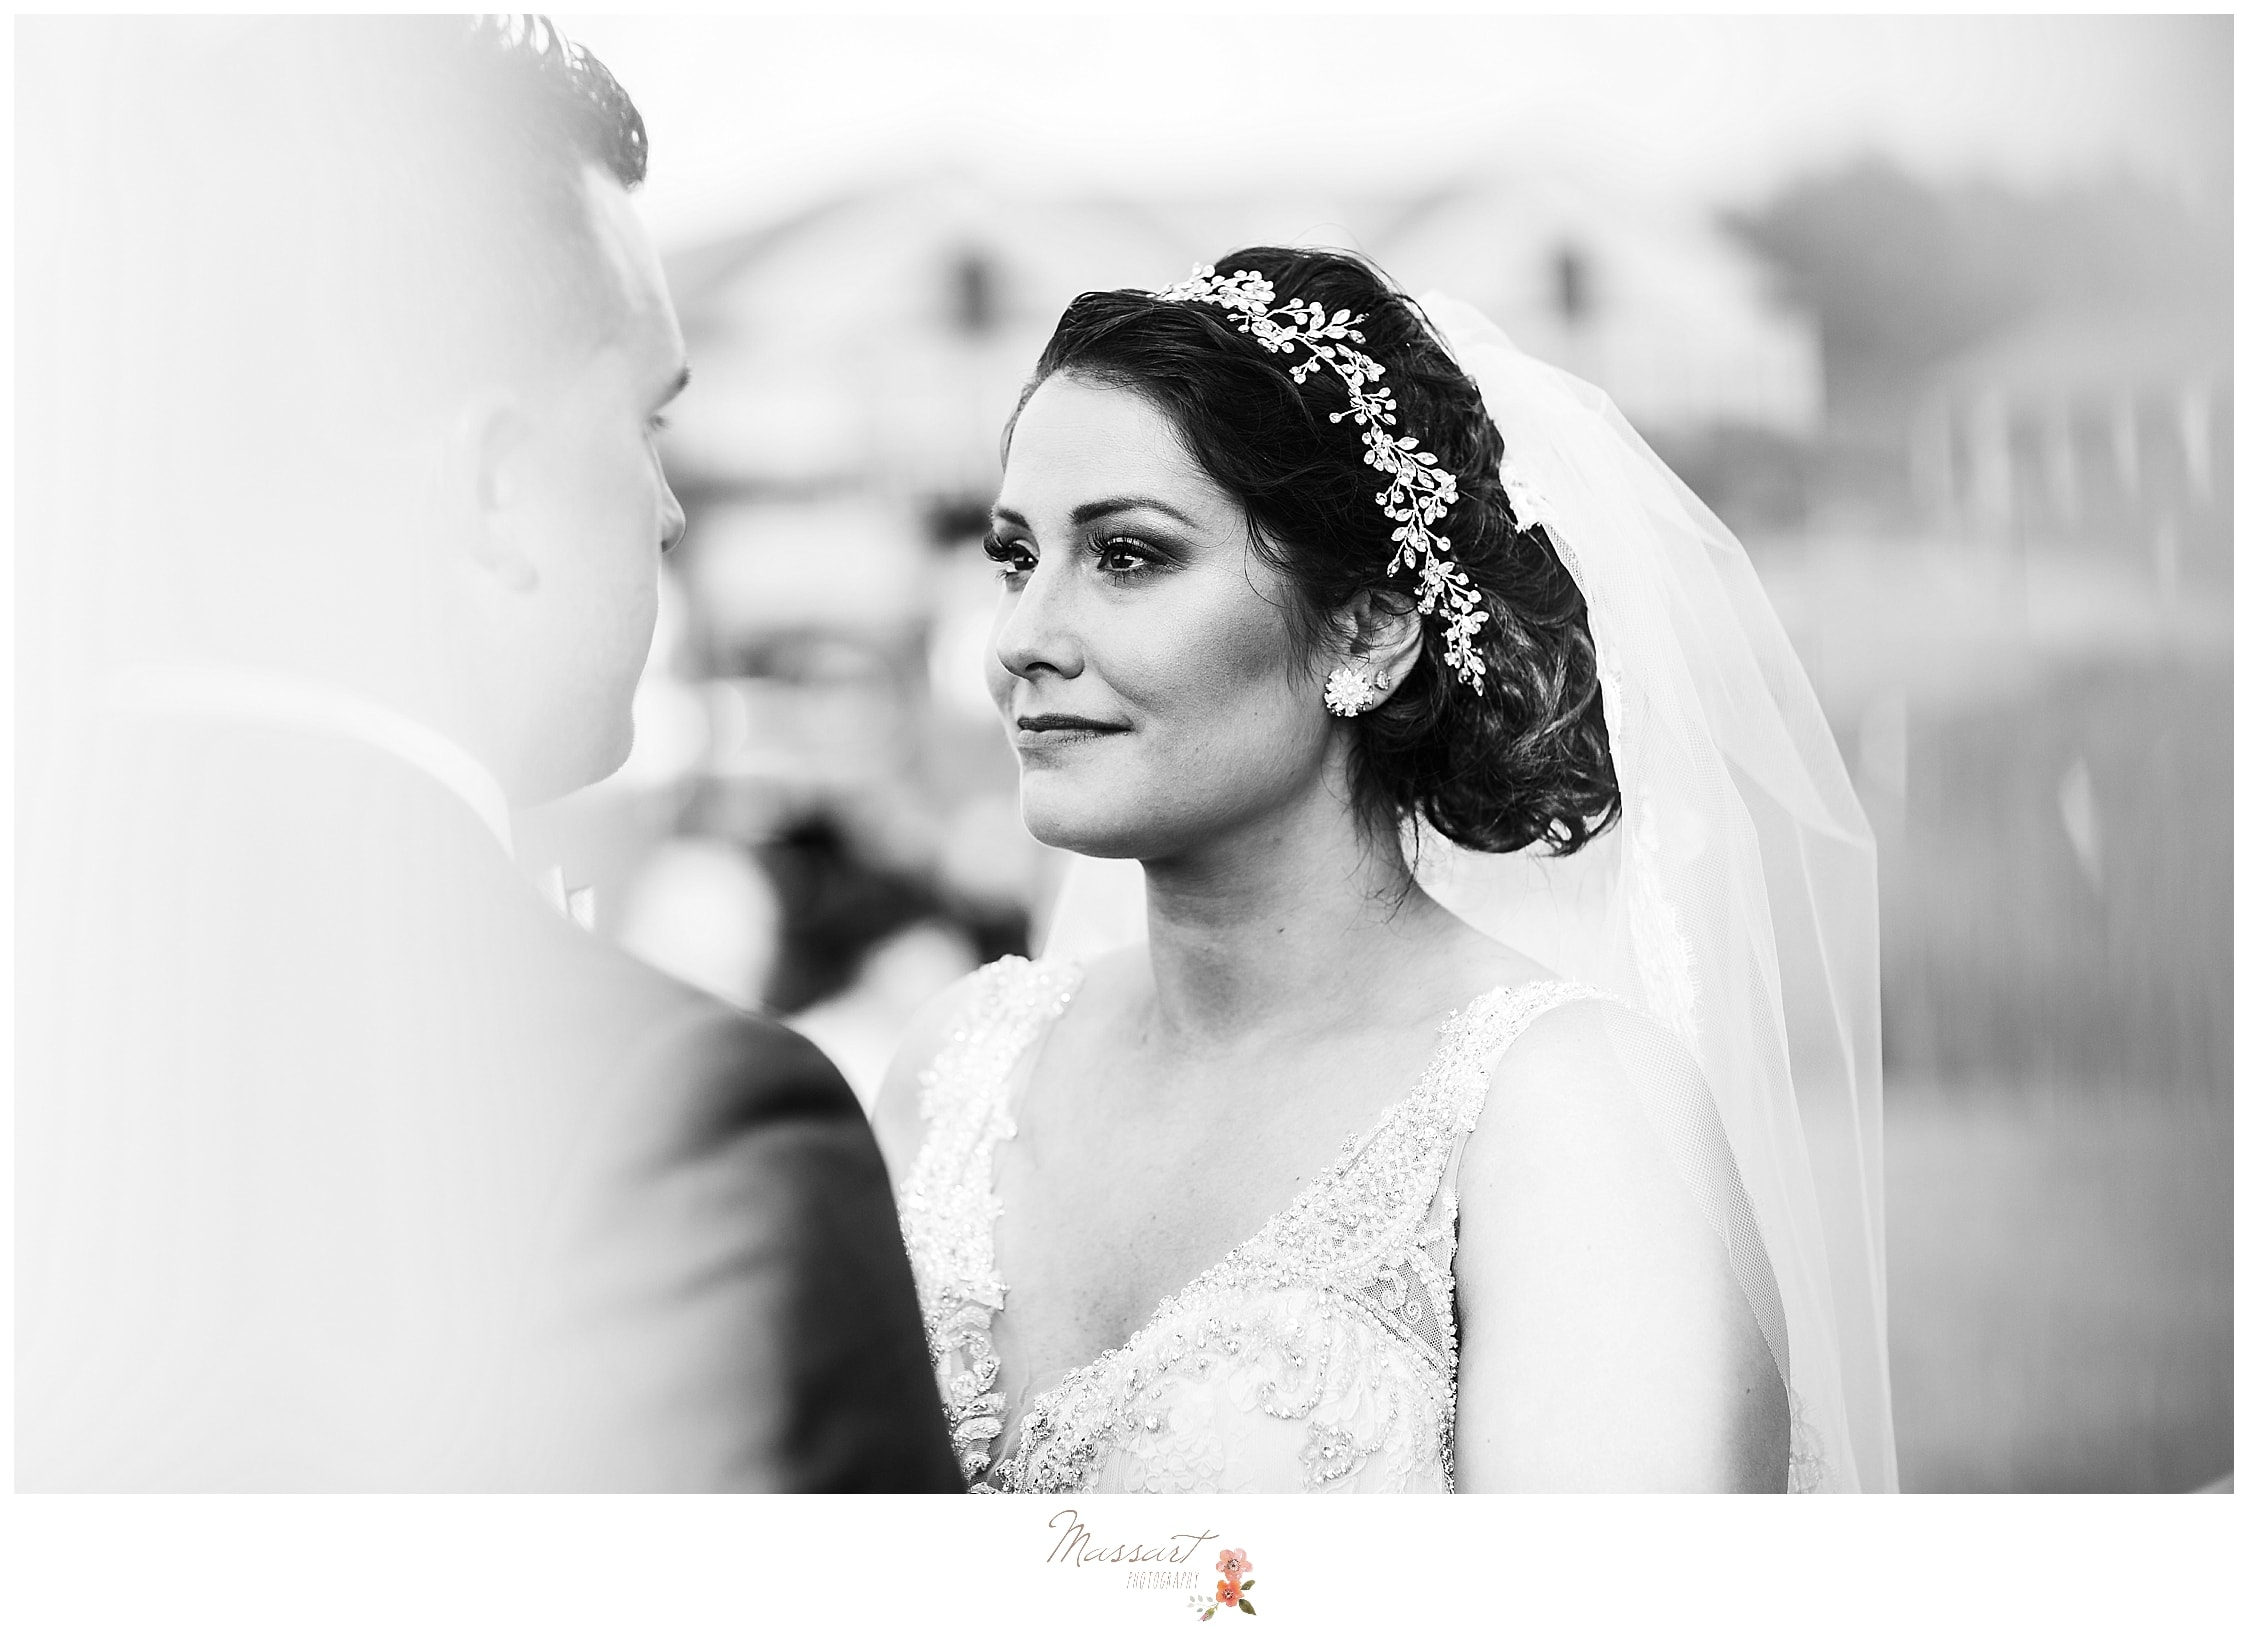 Bride and groom during vows at Harbor Lights in RI photographed by Rhode Island wedding photographers Massart Photography.